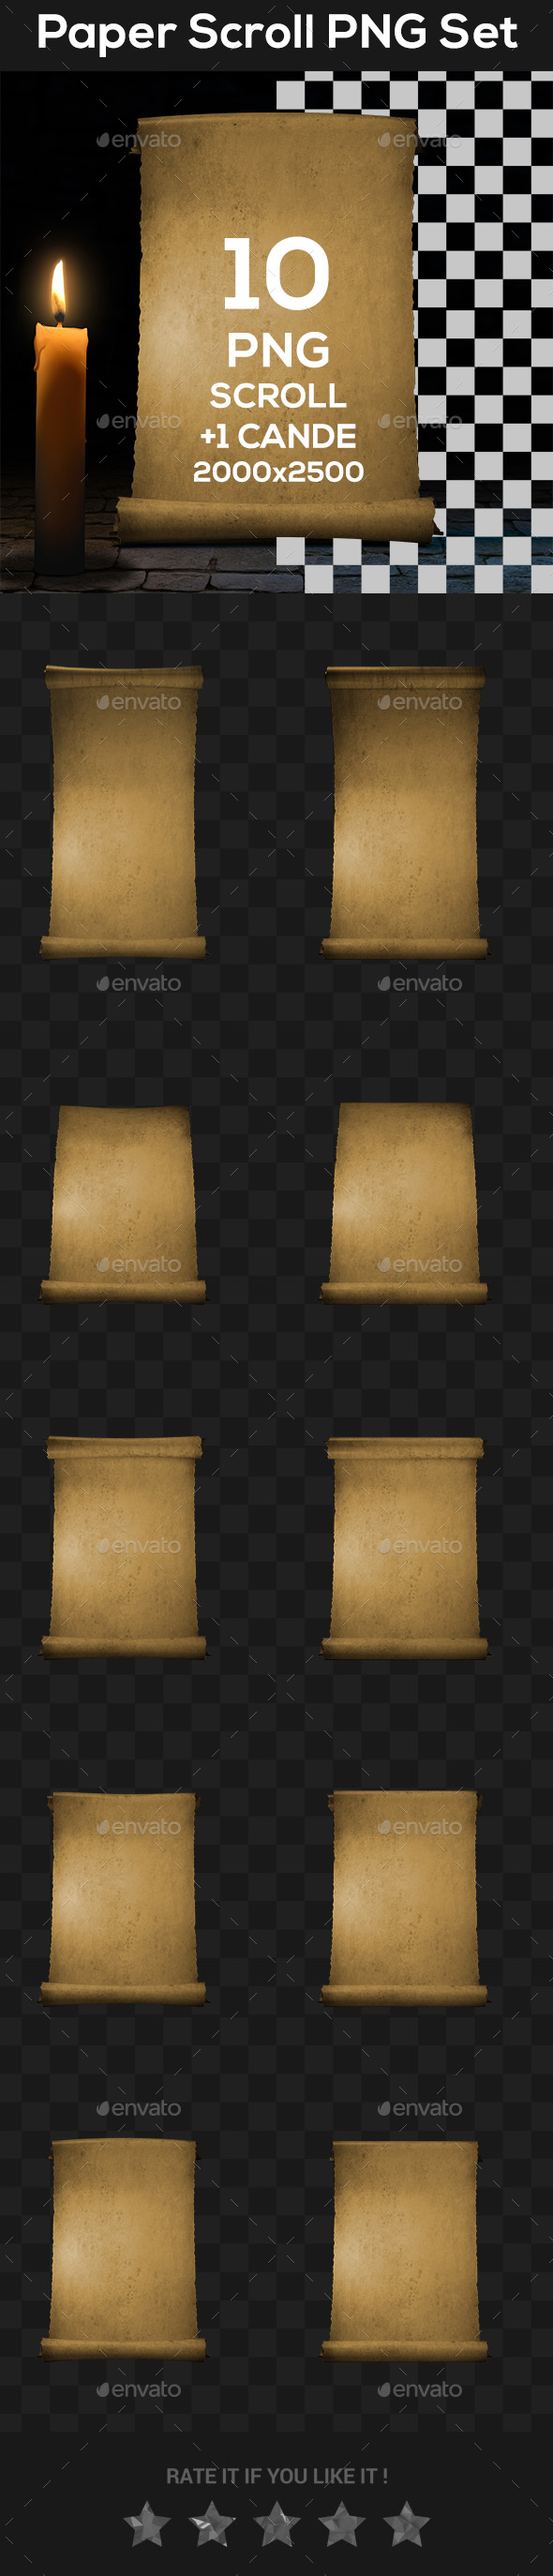 Paper Scroll PNG set - Objects 3D Renders